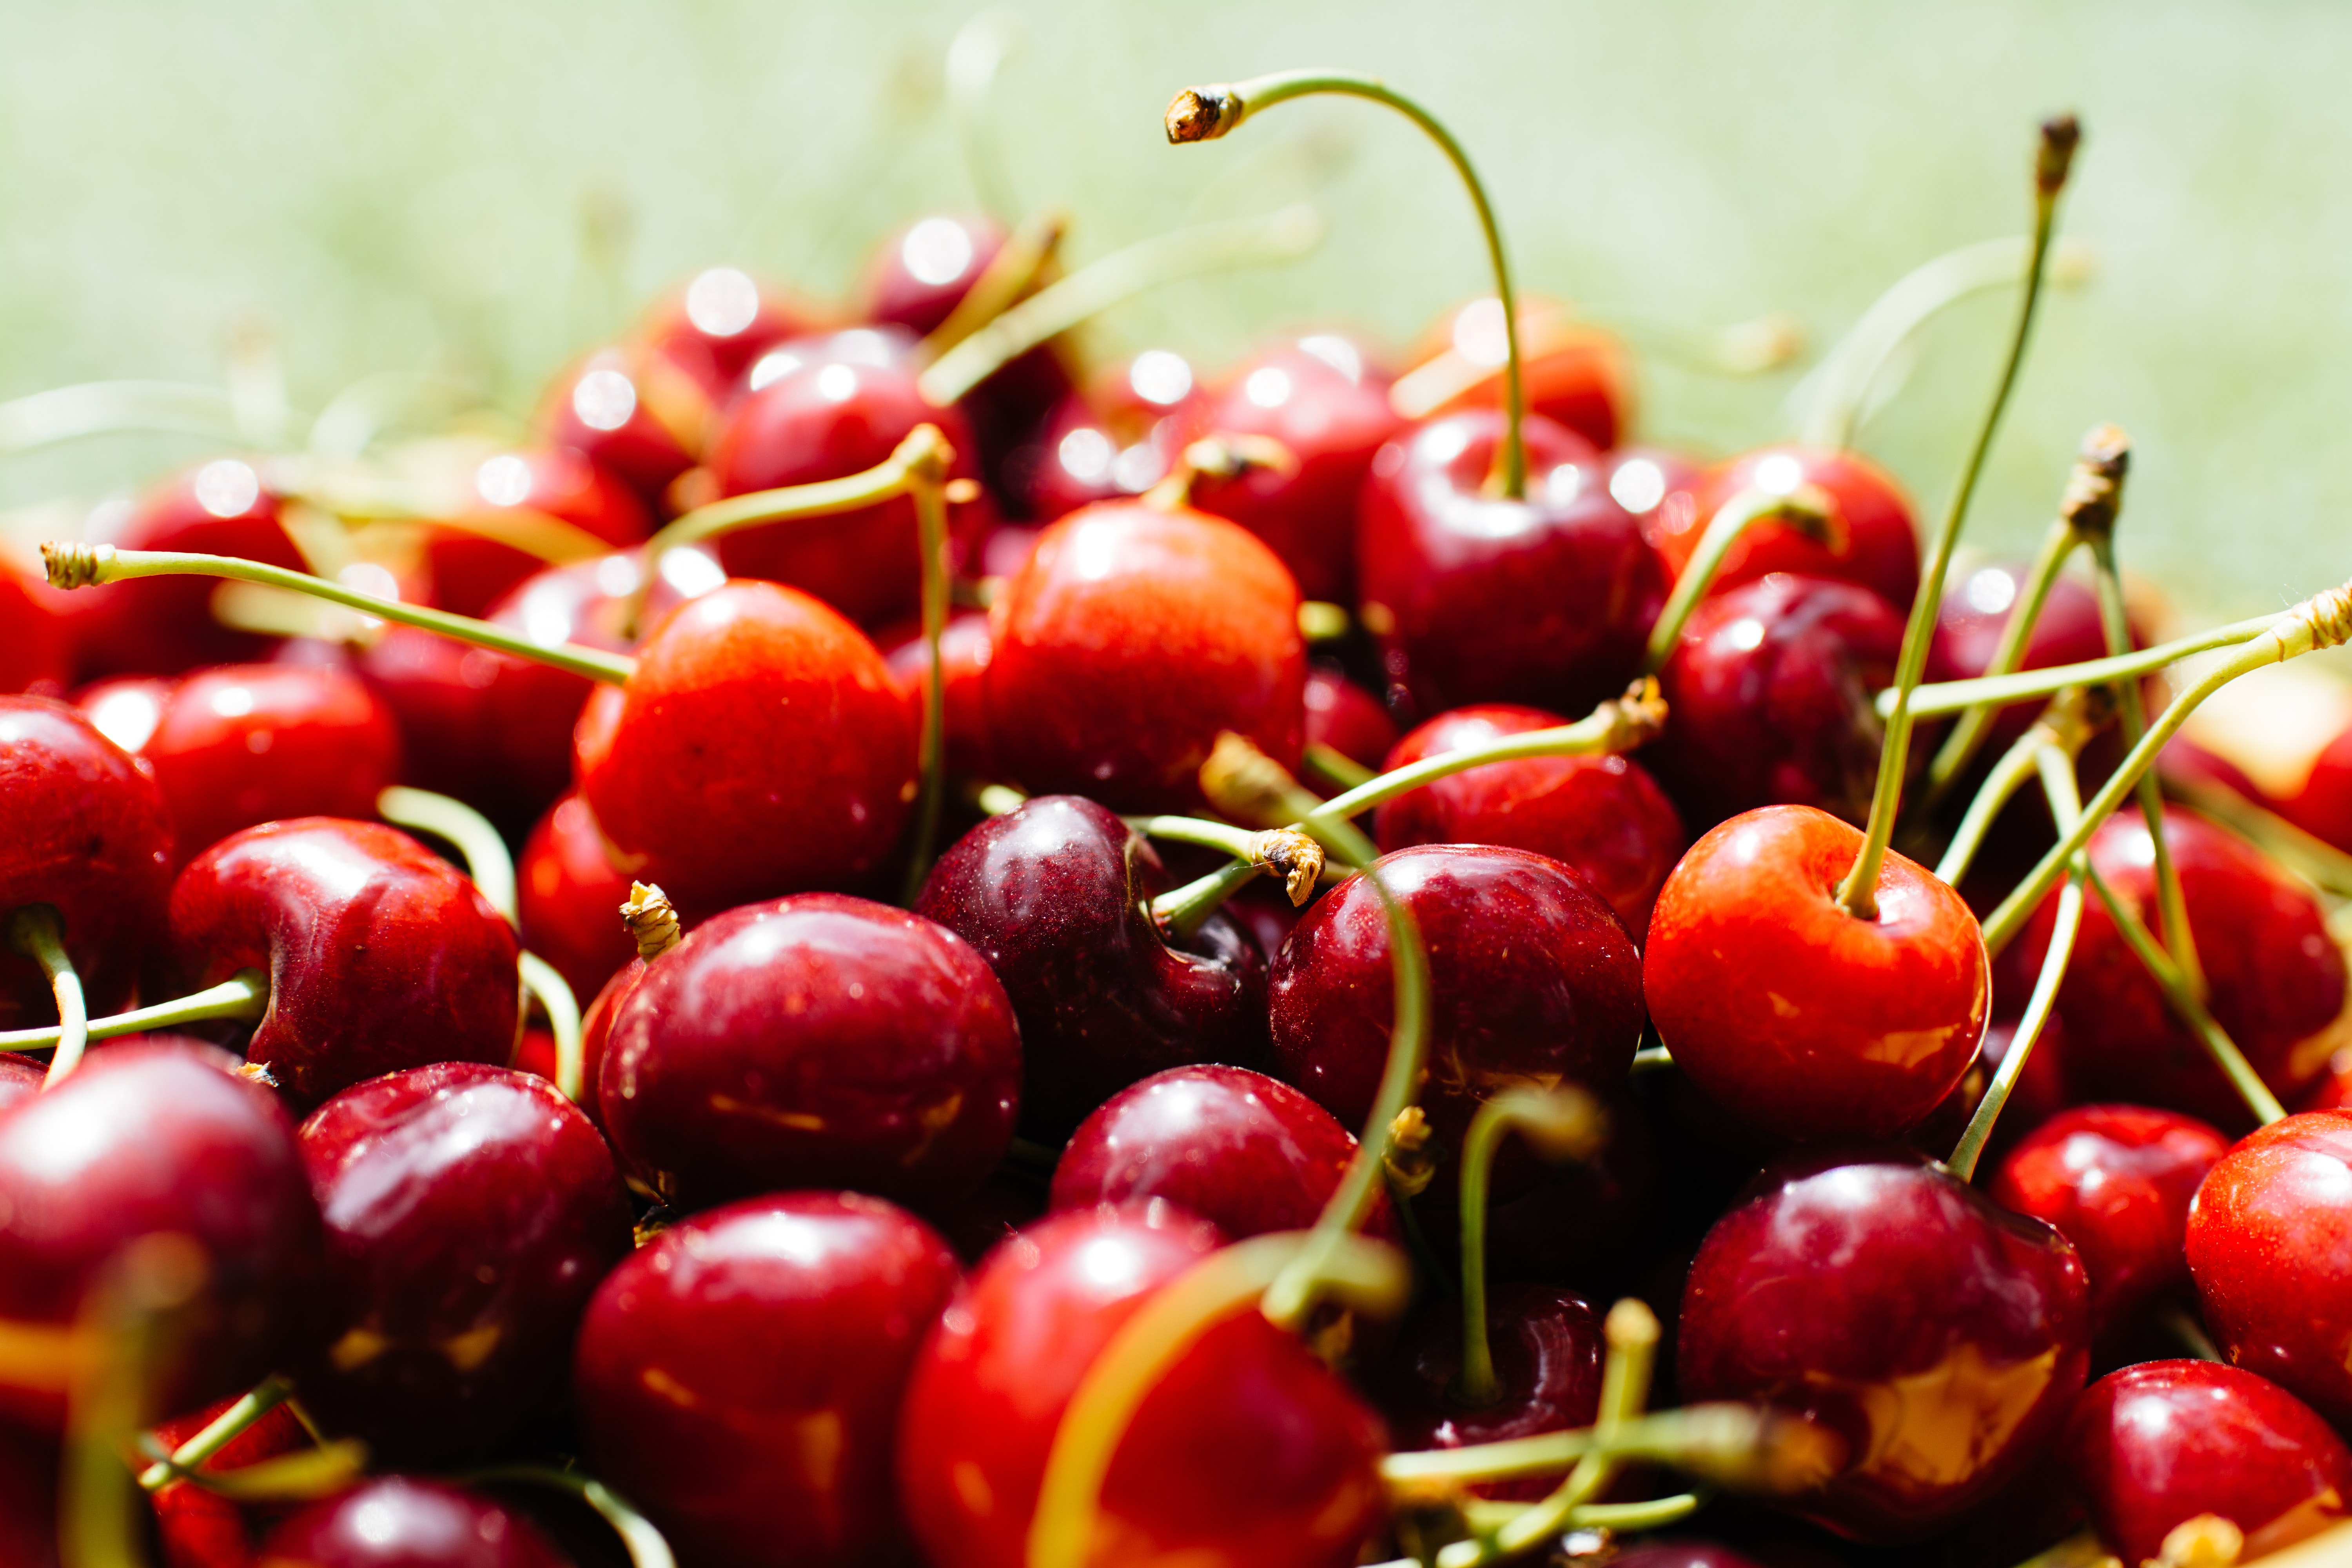 Pile of fresh bing cherries with long stems